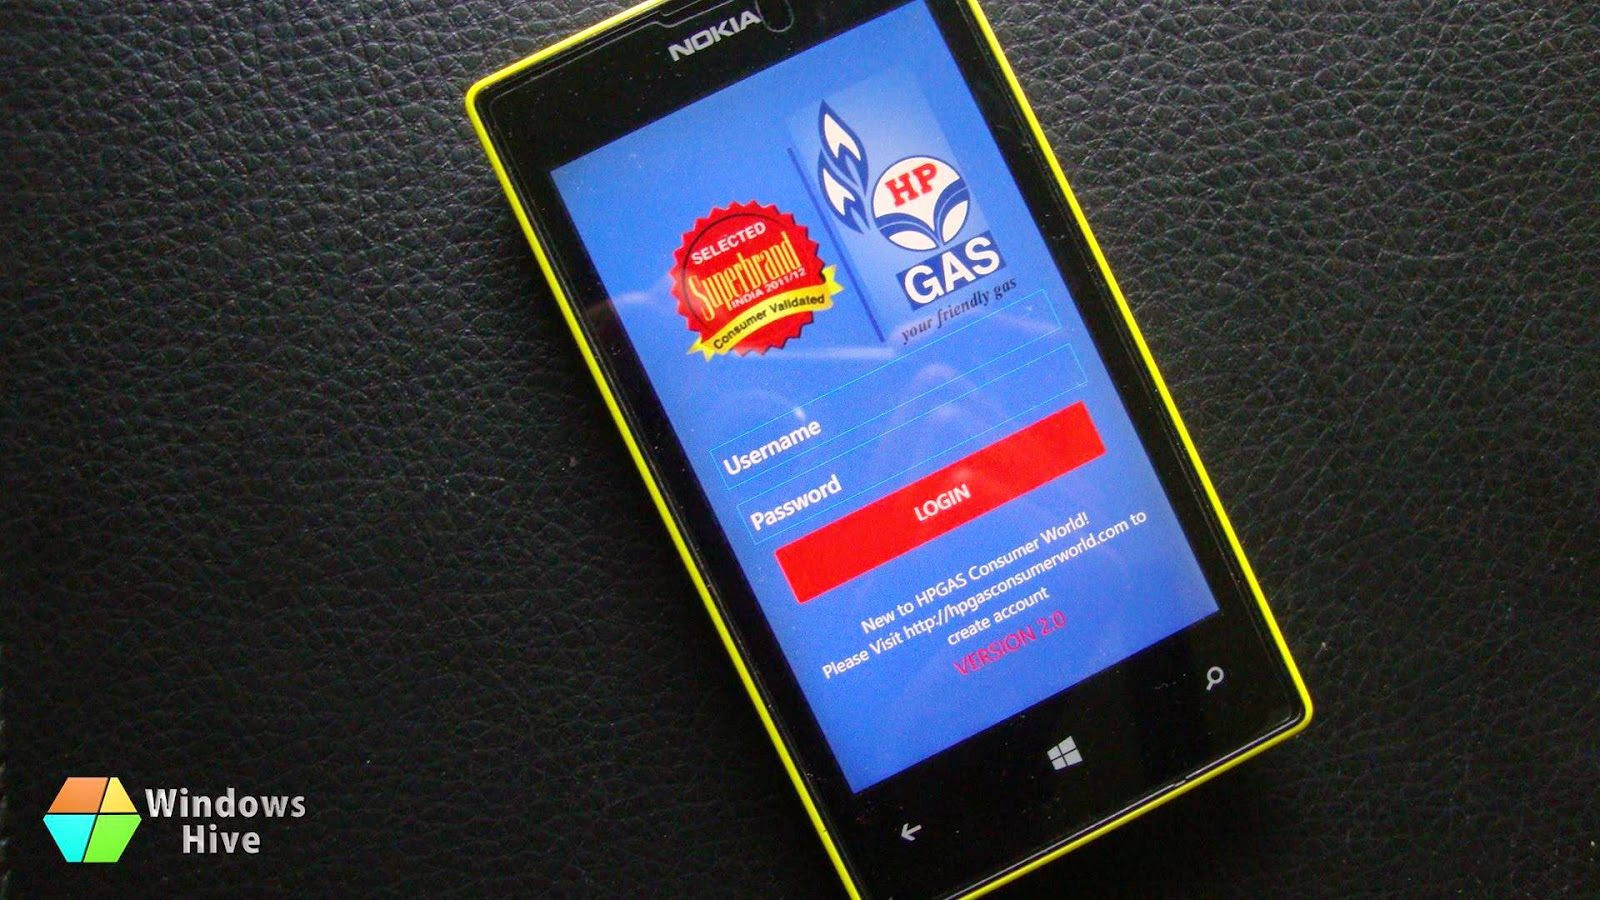 hp gas app, windows phone